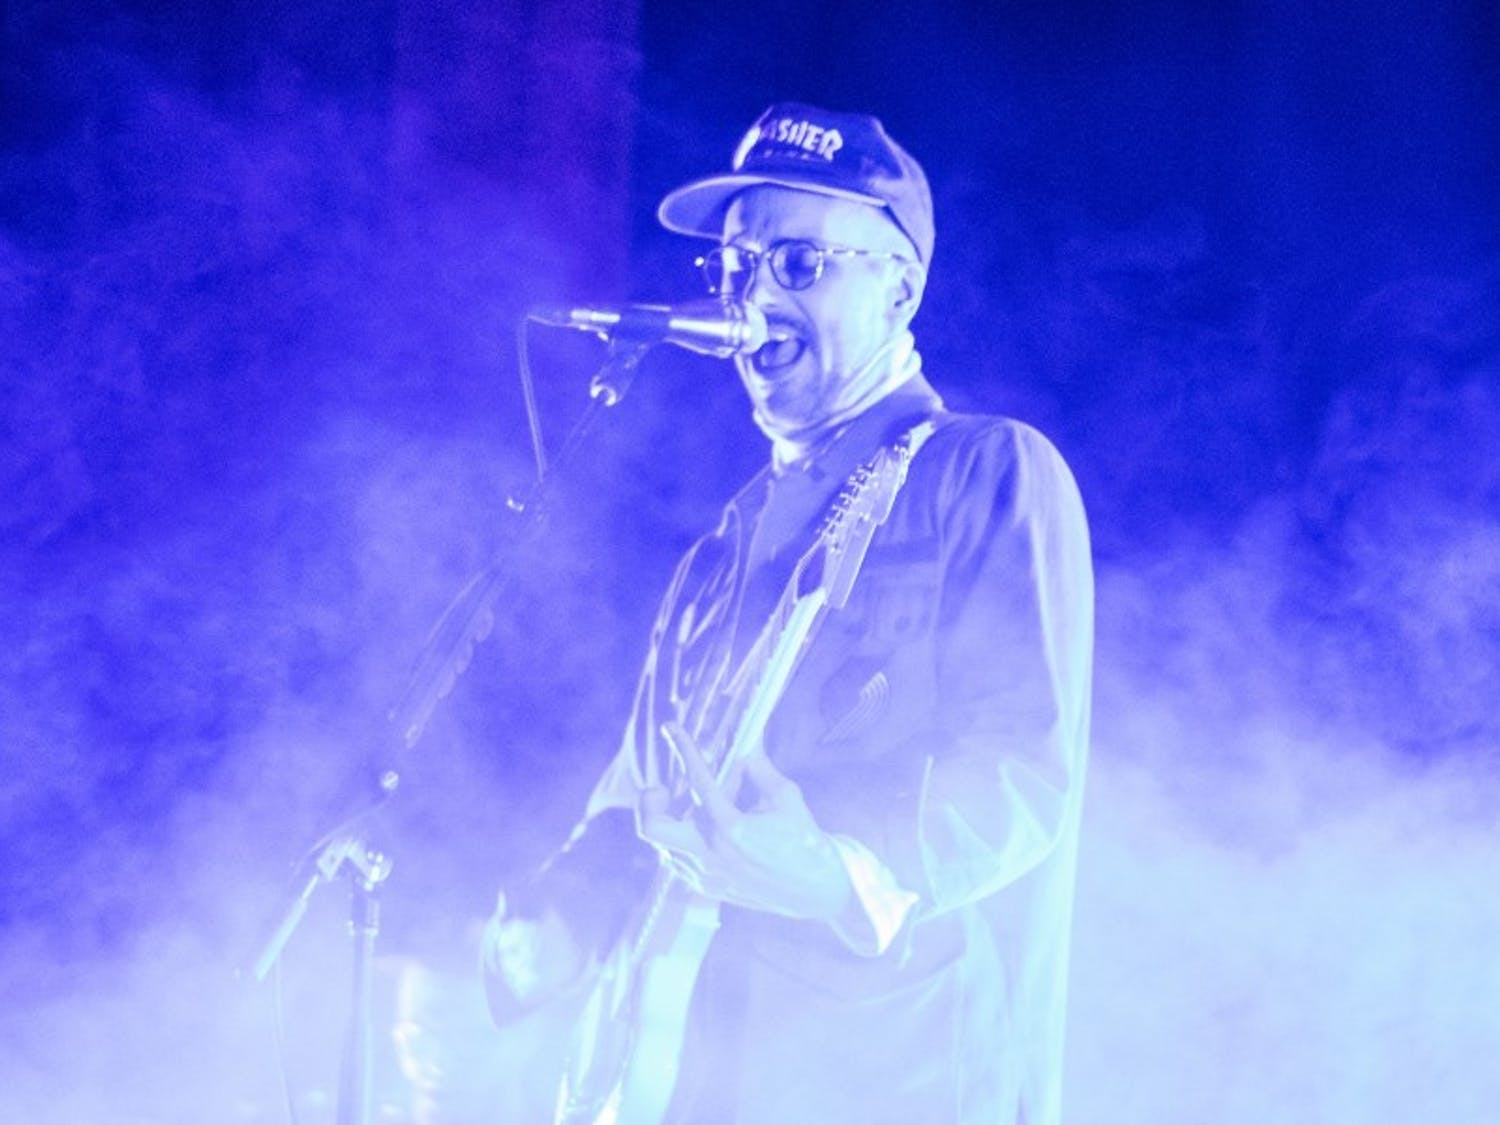 Portugal. The Man brought some of their new spirited vitality and buzz to the Overture Center.